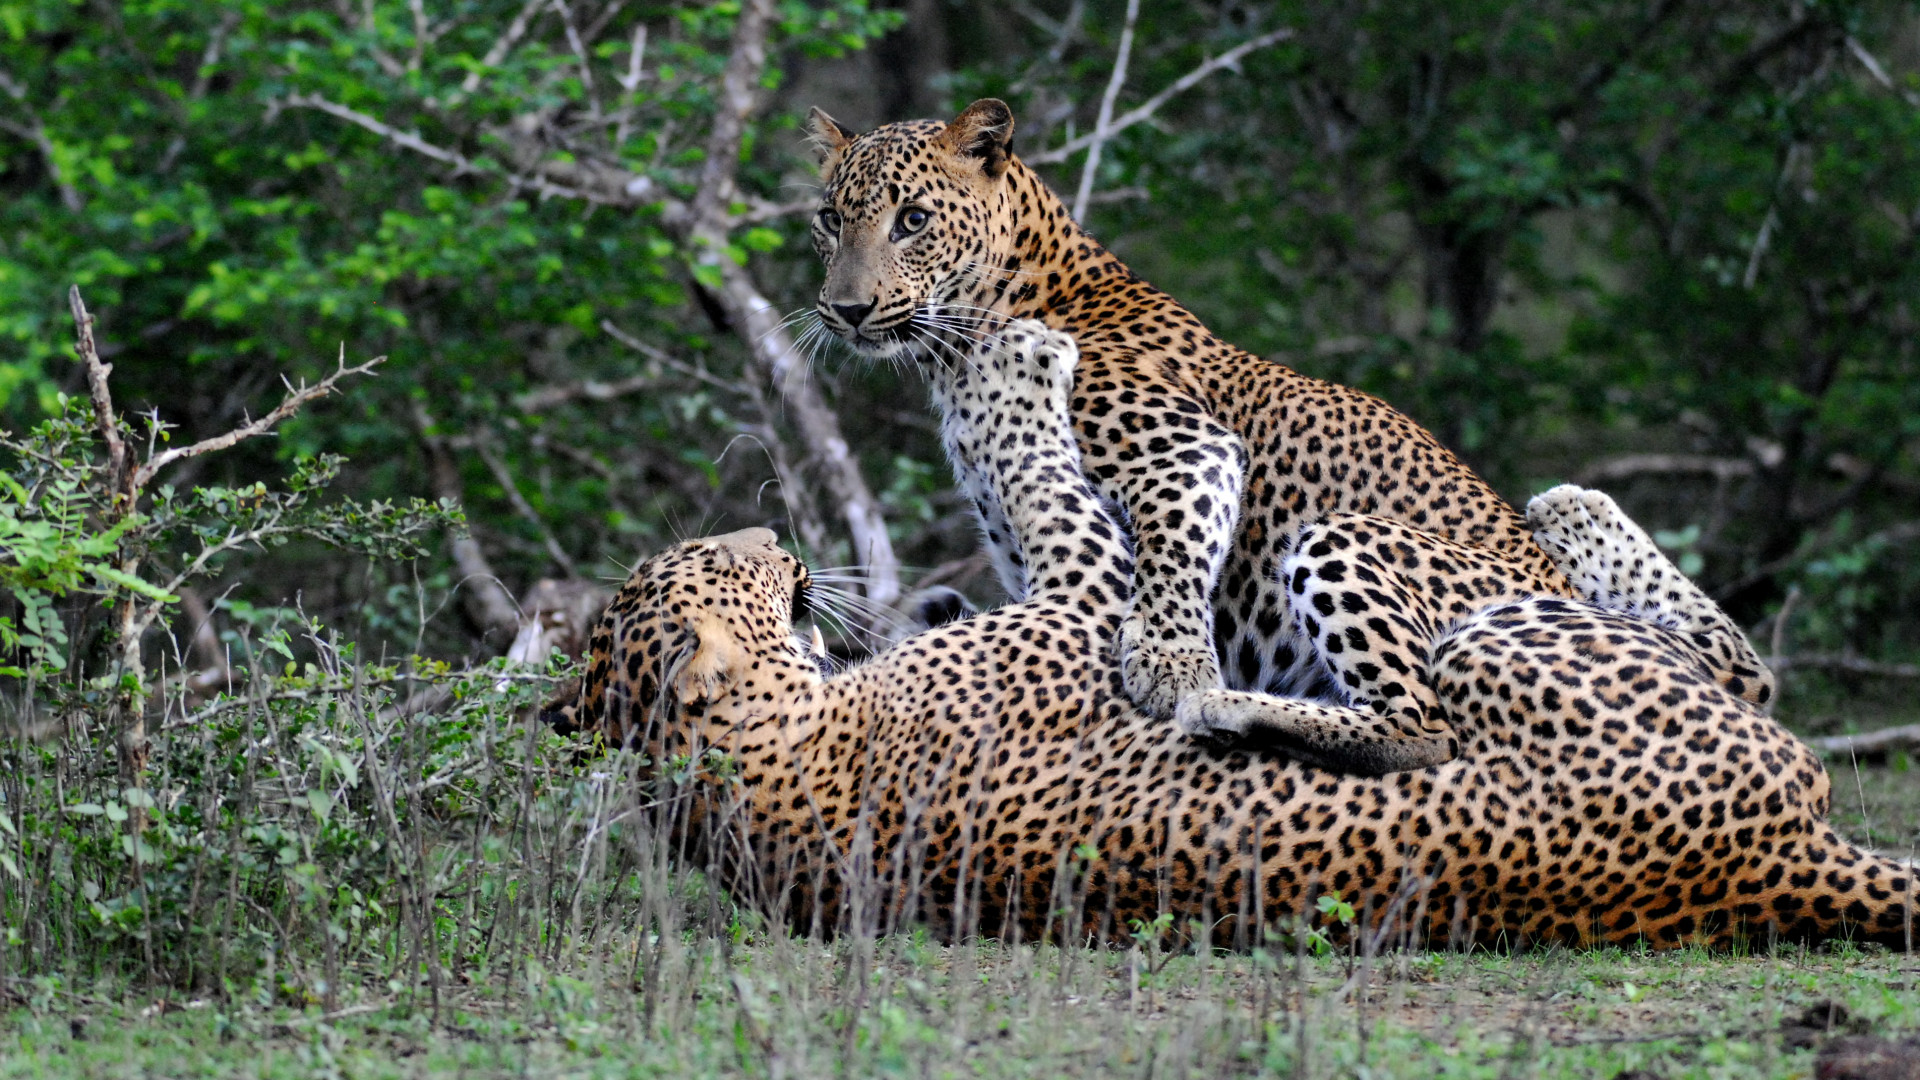 Leopards in Yala National Game Reserve, Sri Lanka